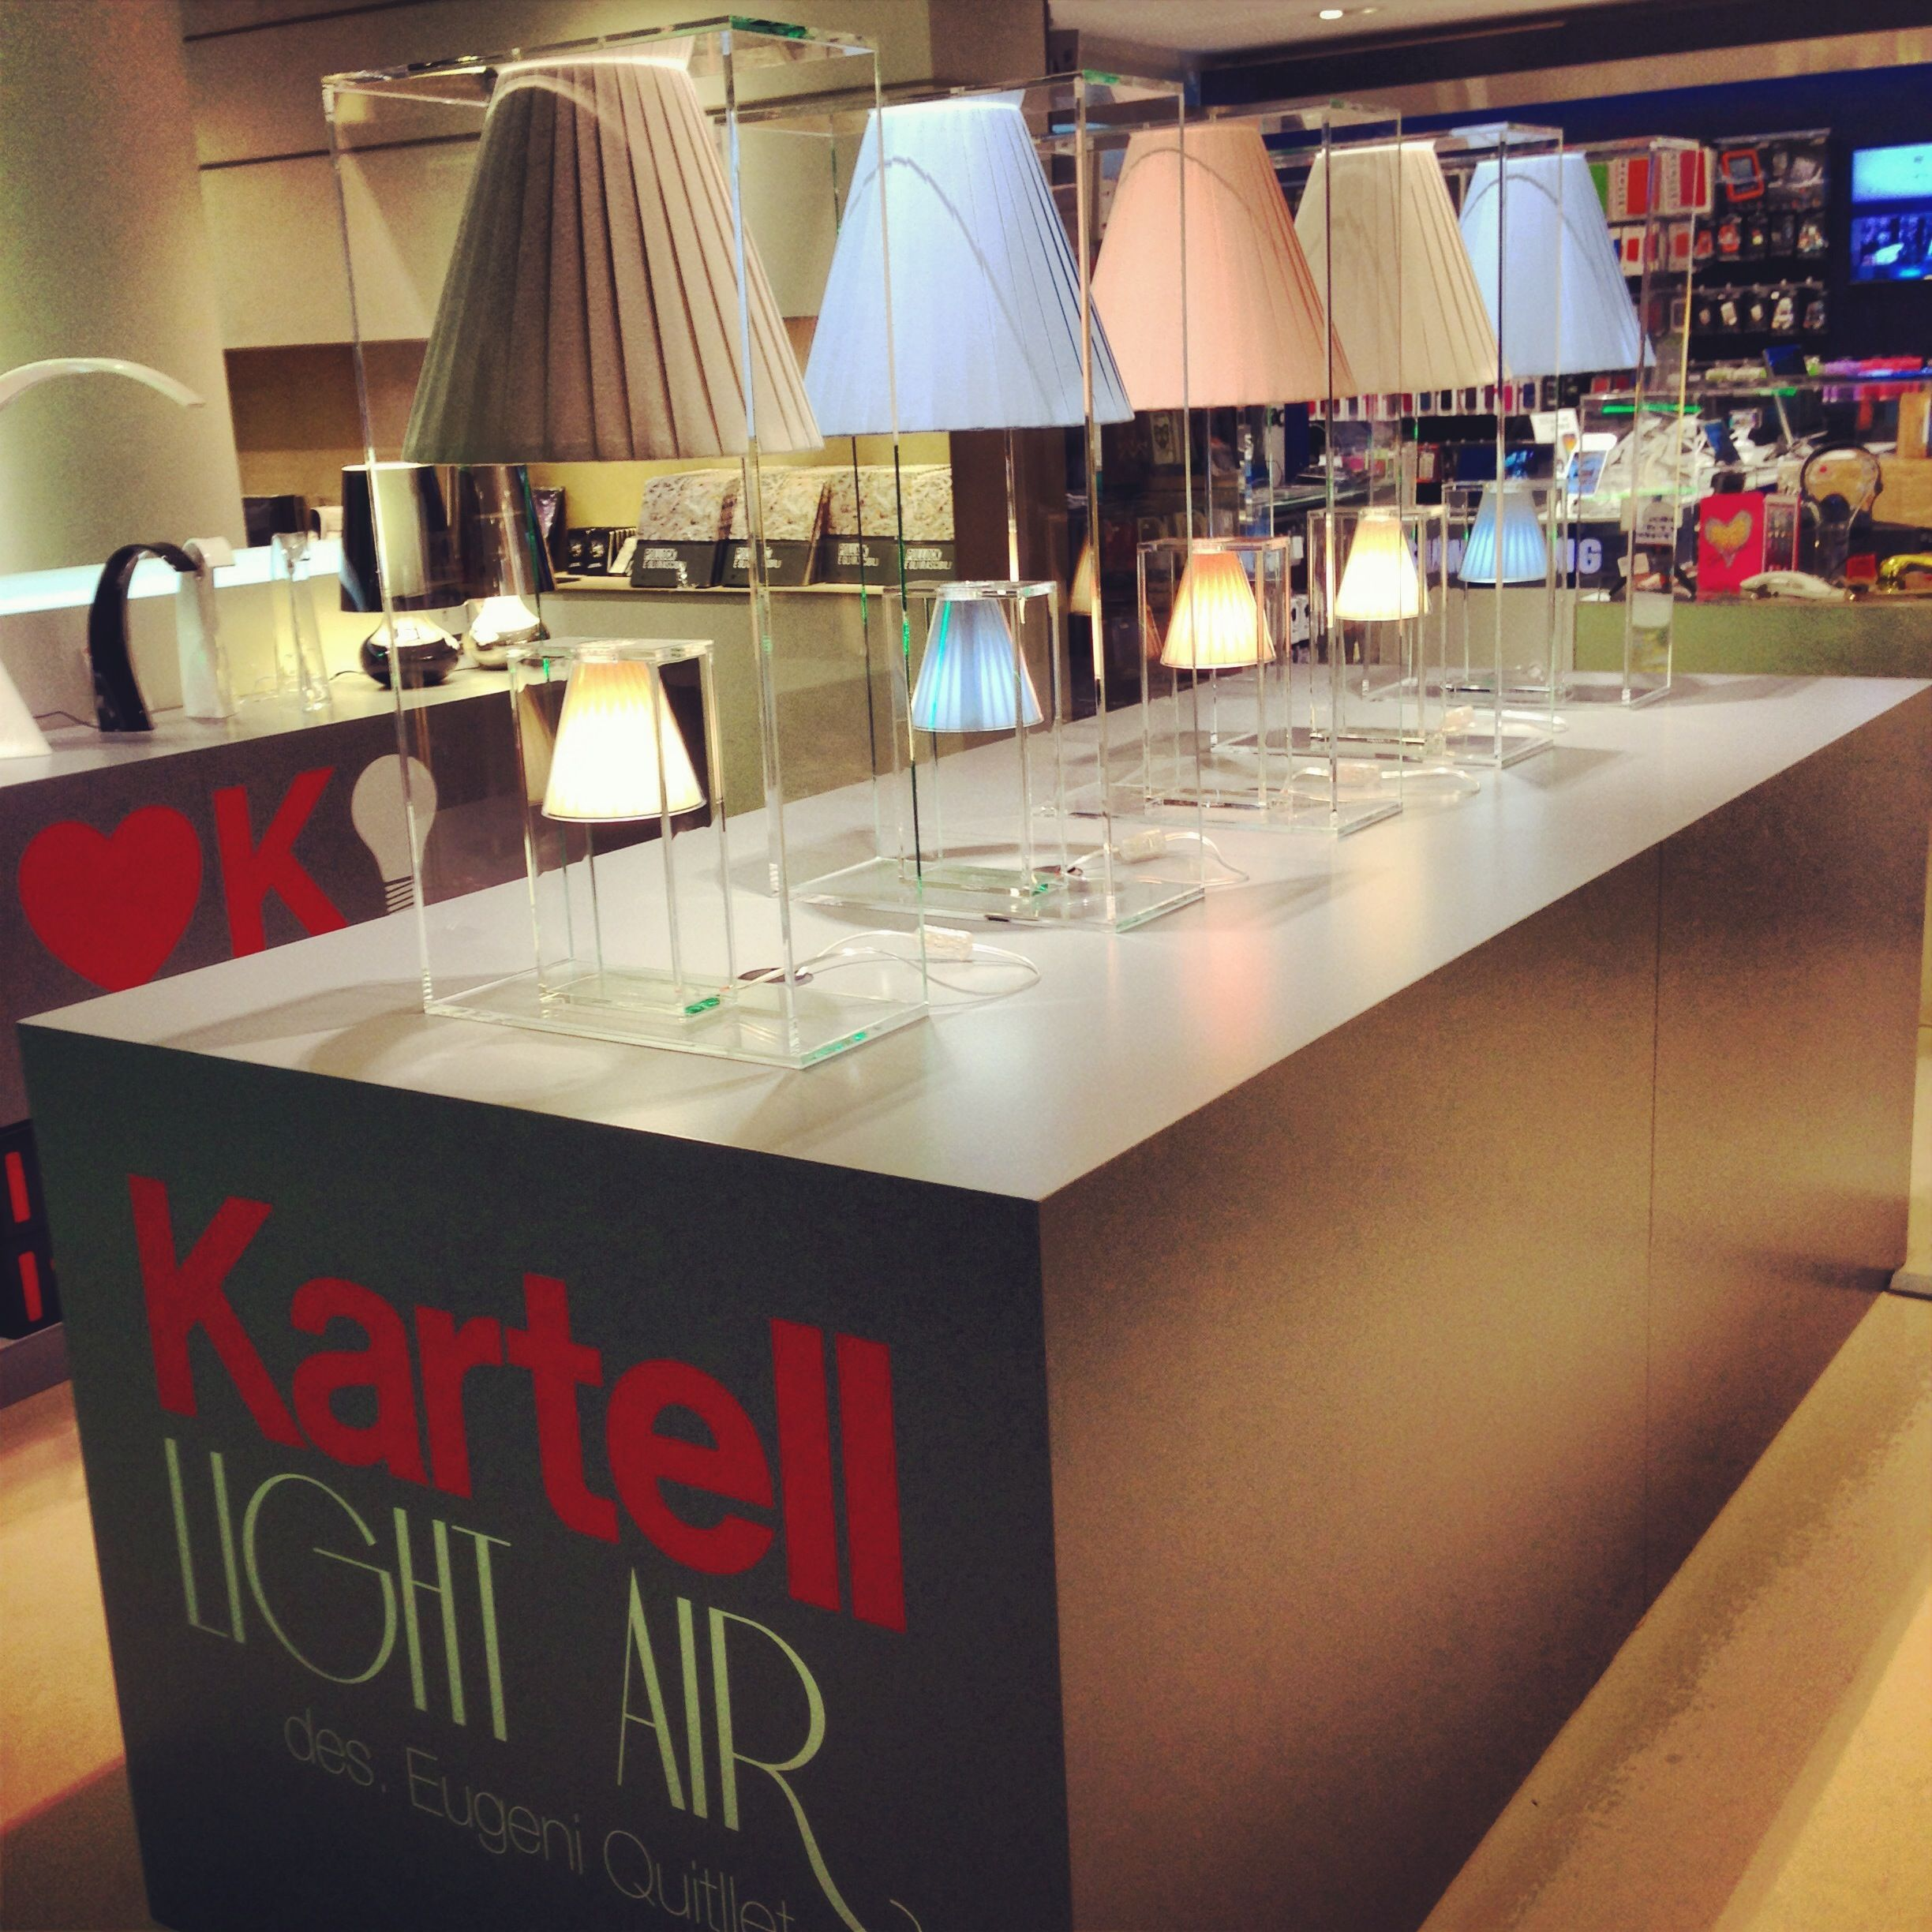 Kartell light air at larinascente milano find out the for Kartell binasco